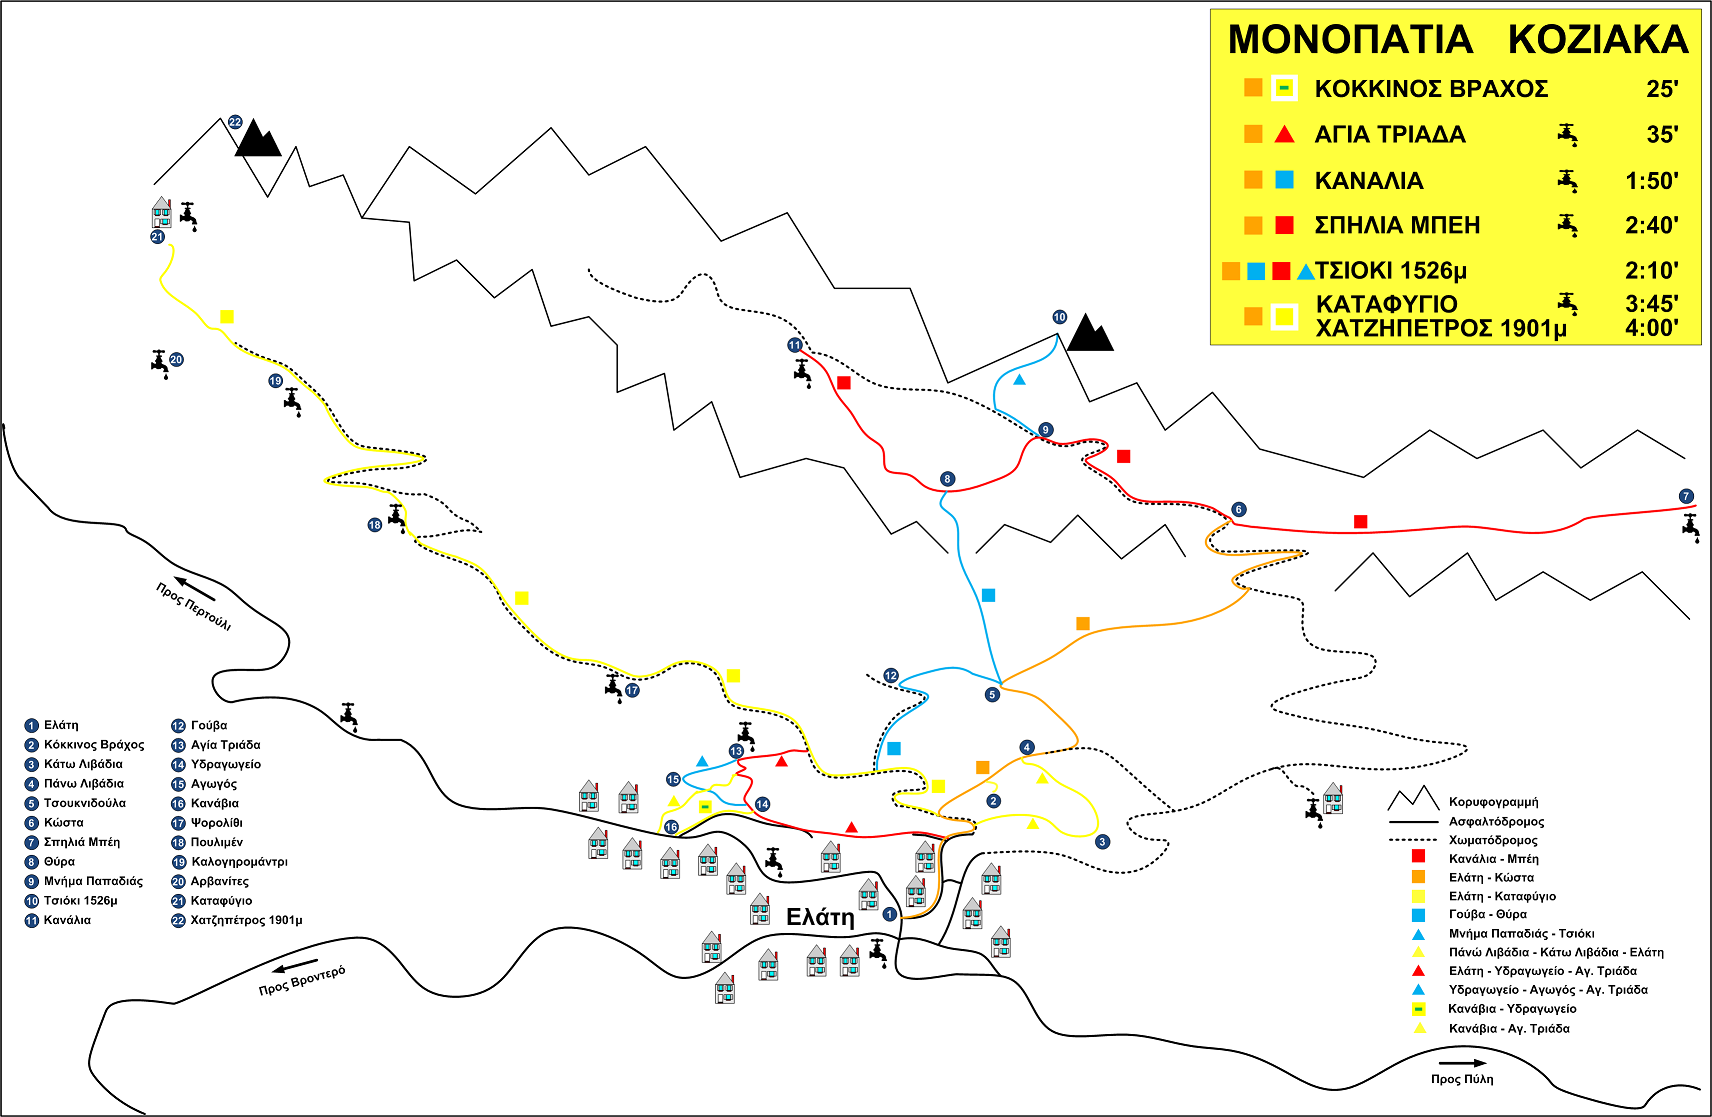 monopatia map